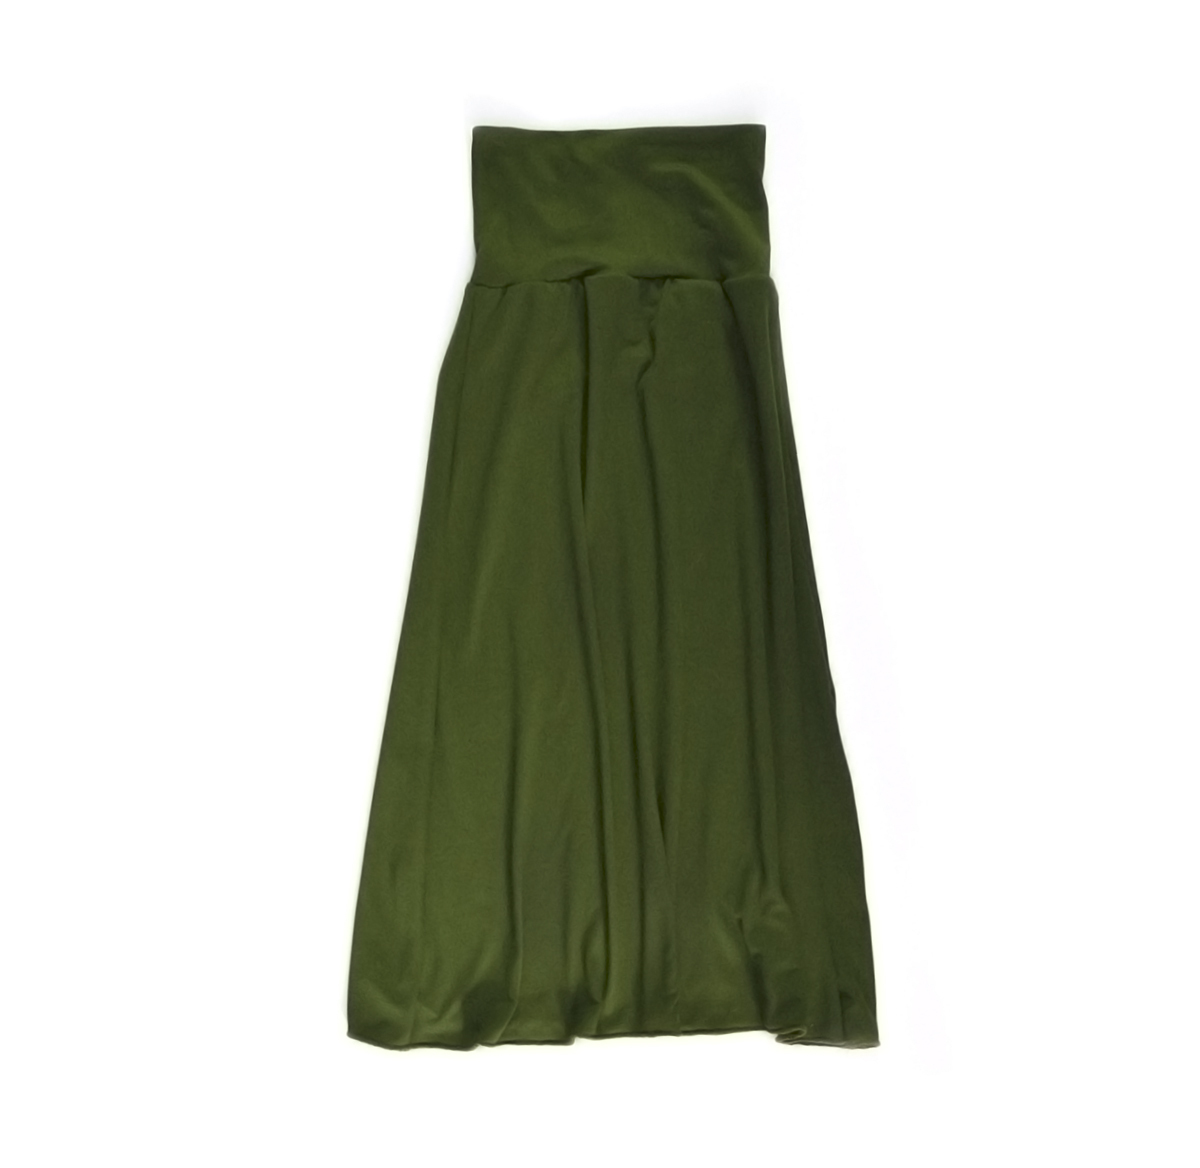 Little Sprout™ Girl's Maxi Skirt -Olive 00847